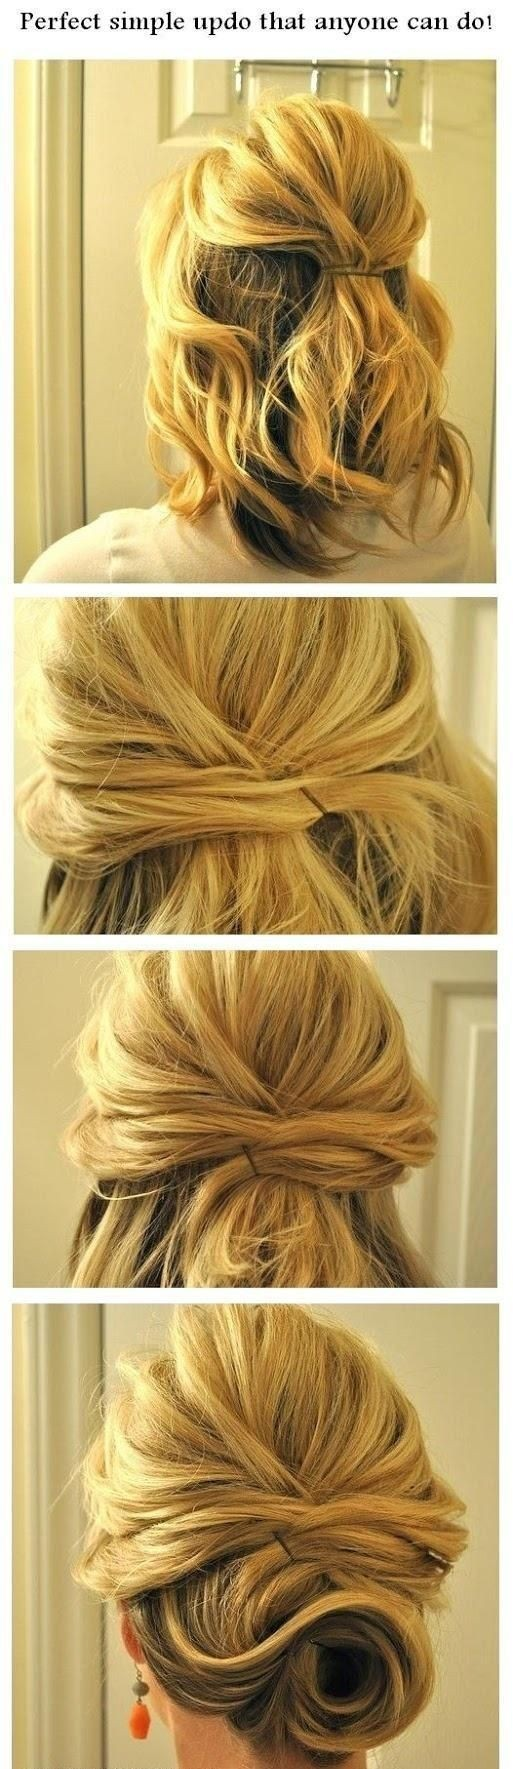 Perfect Simple Short Updo Hairstyle